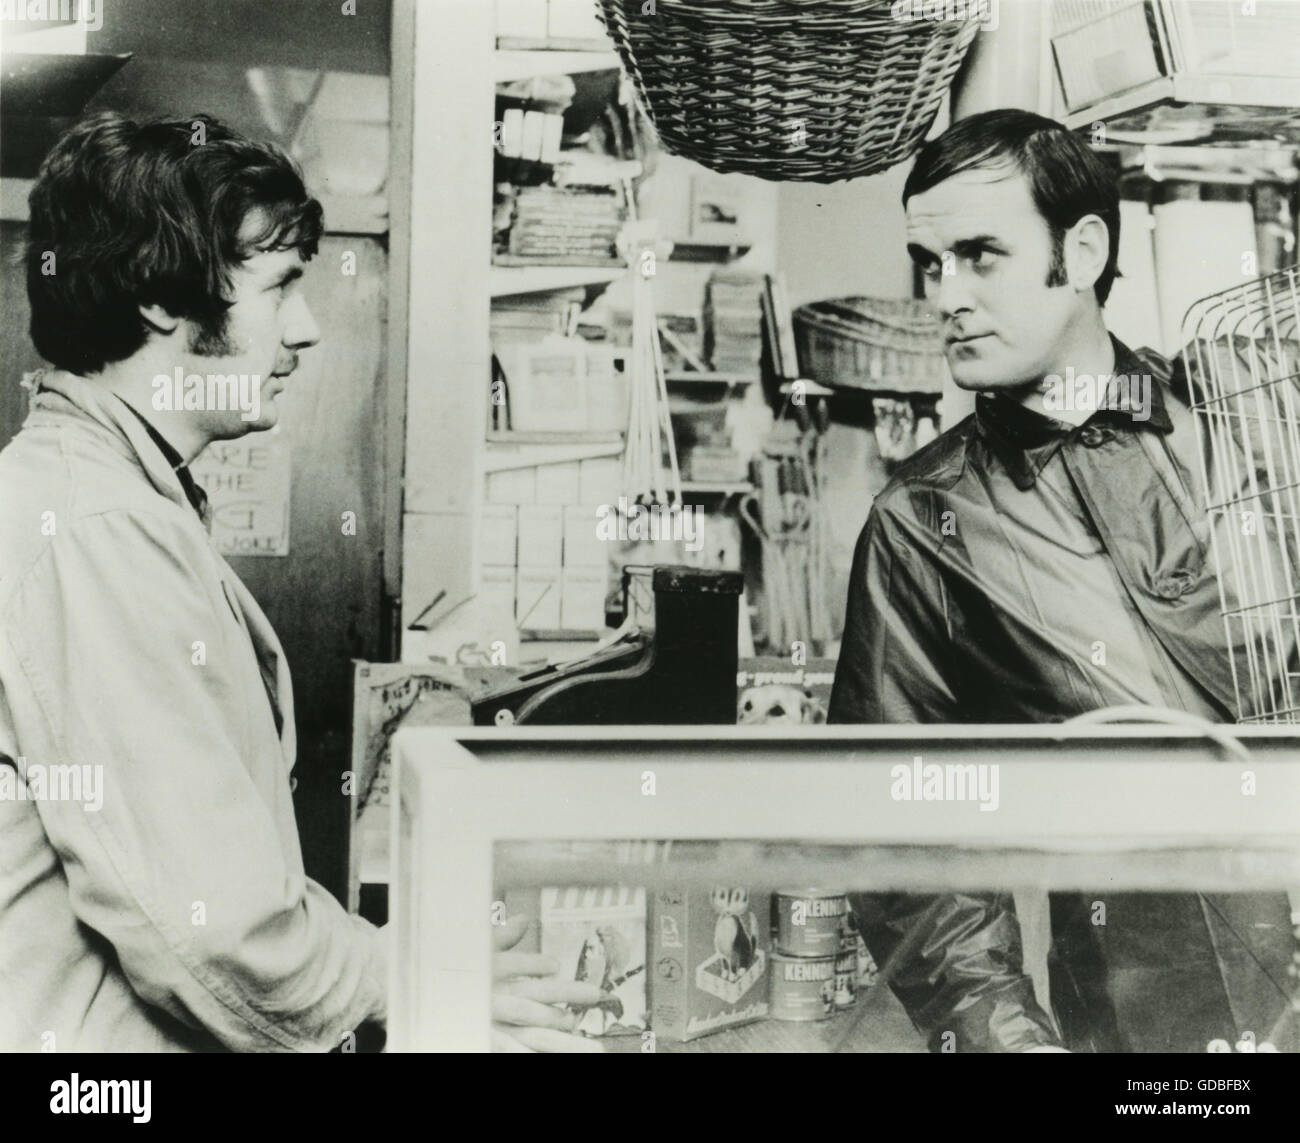 FILM And Now for Something Completely Different (1971, Ian MacNaughton) The Dead Parrot: Michael Palin, John Cleese - Stock Image